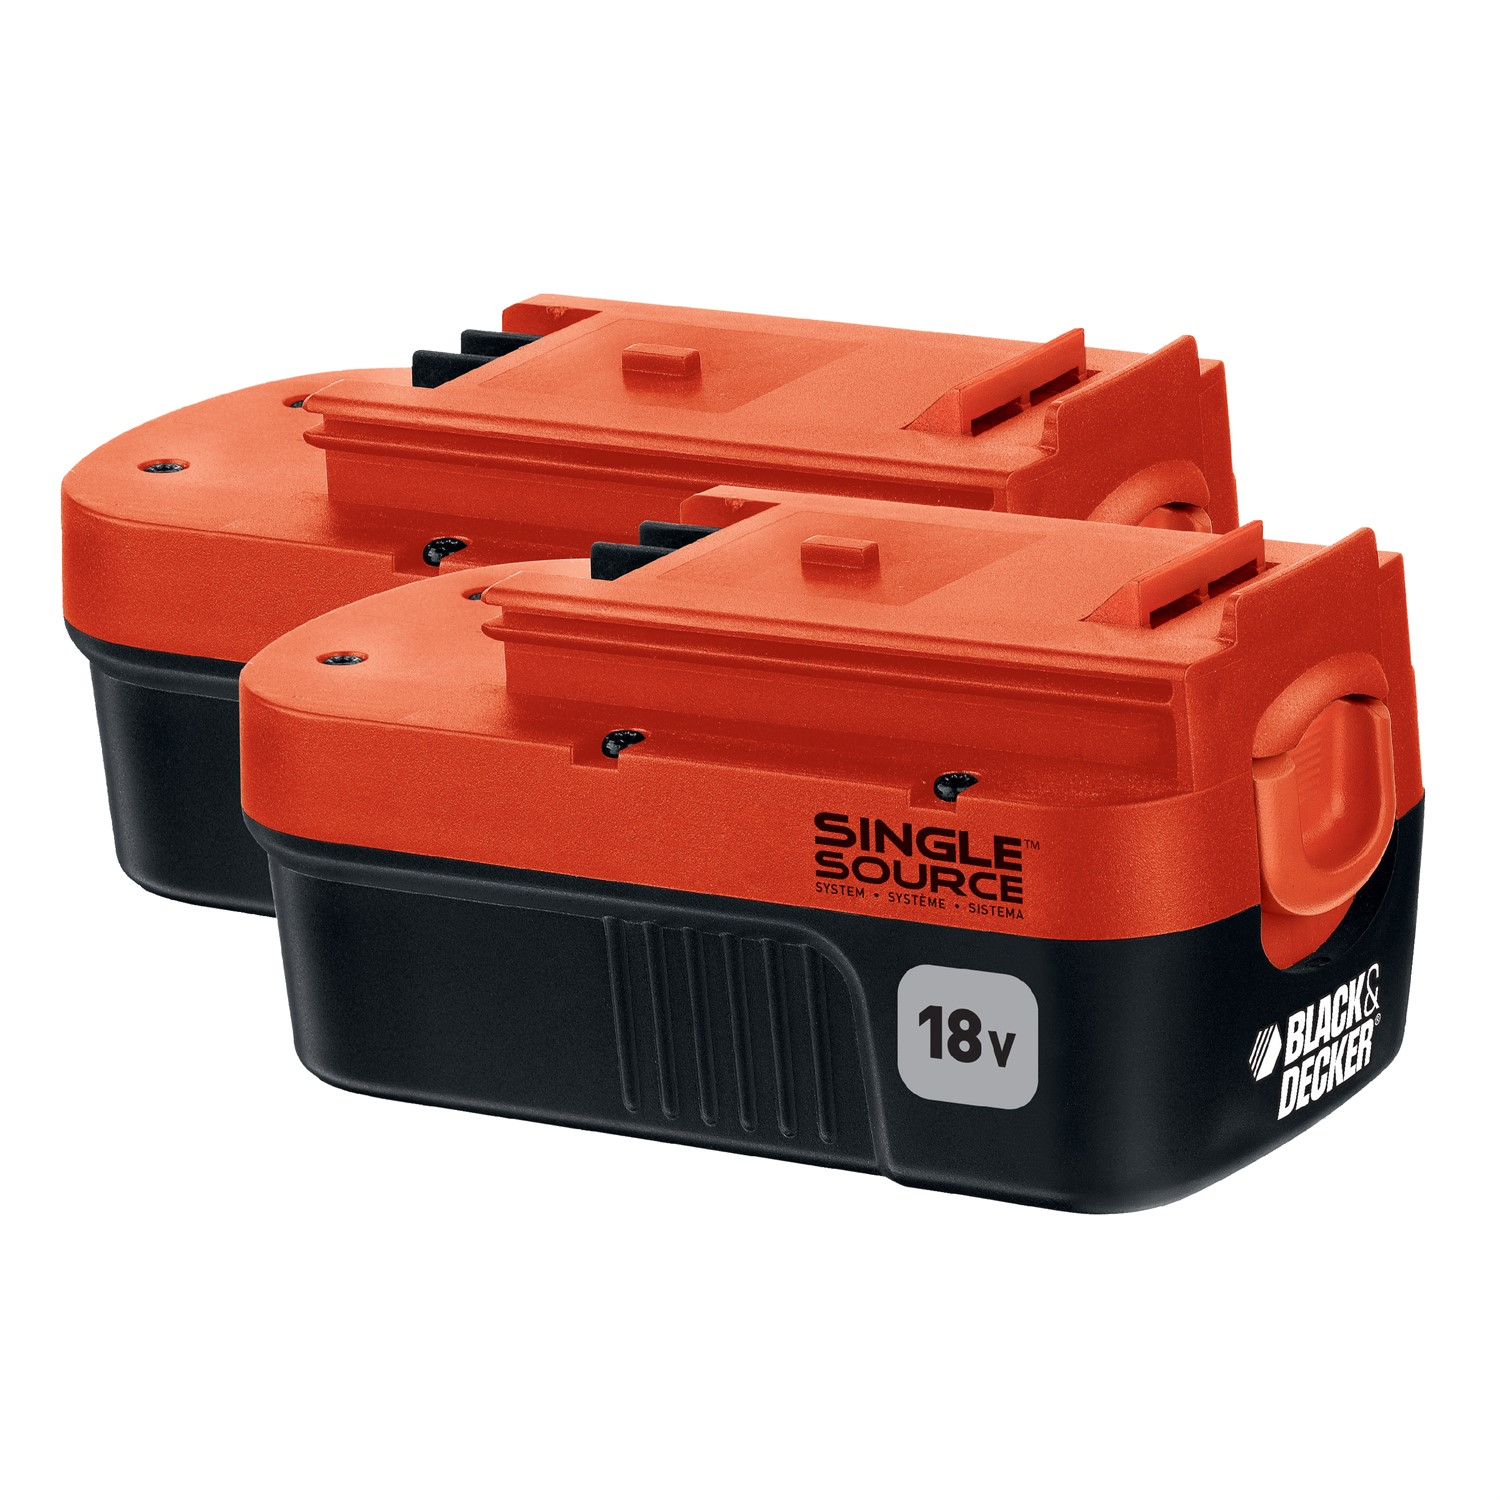 BLACK+DECKER HPB18-OPE2 18V NiCad Slide Battery Battery, 2-Pack